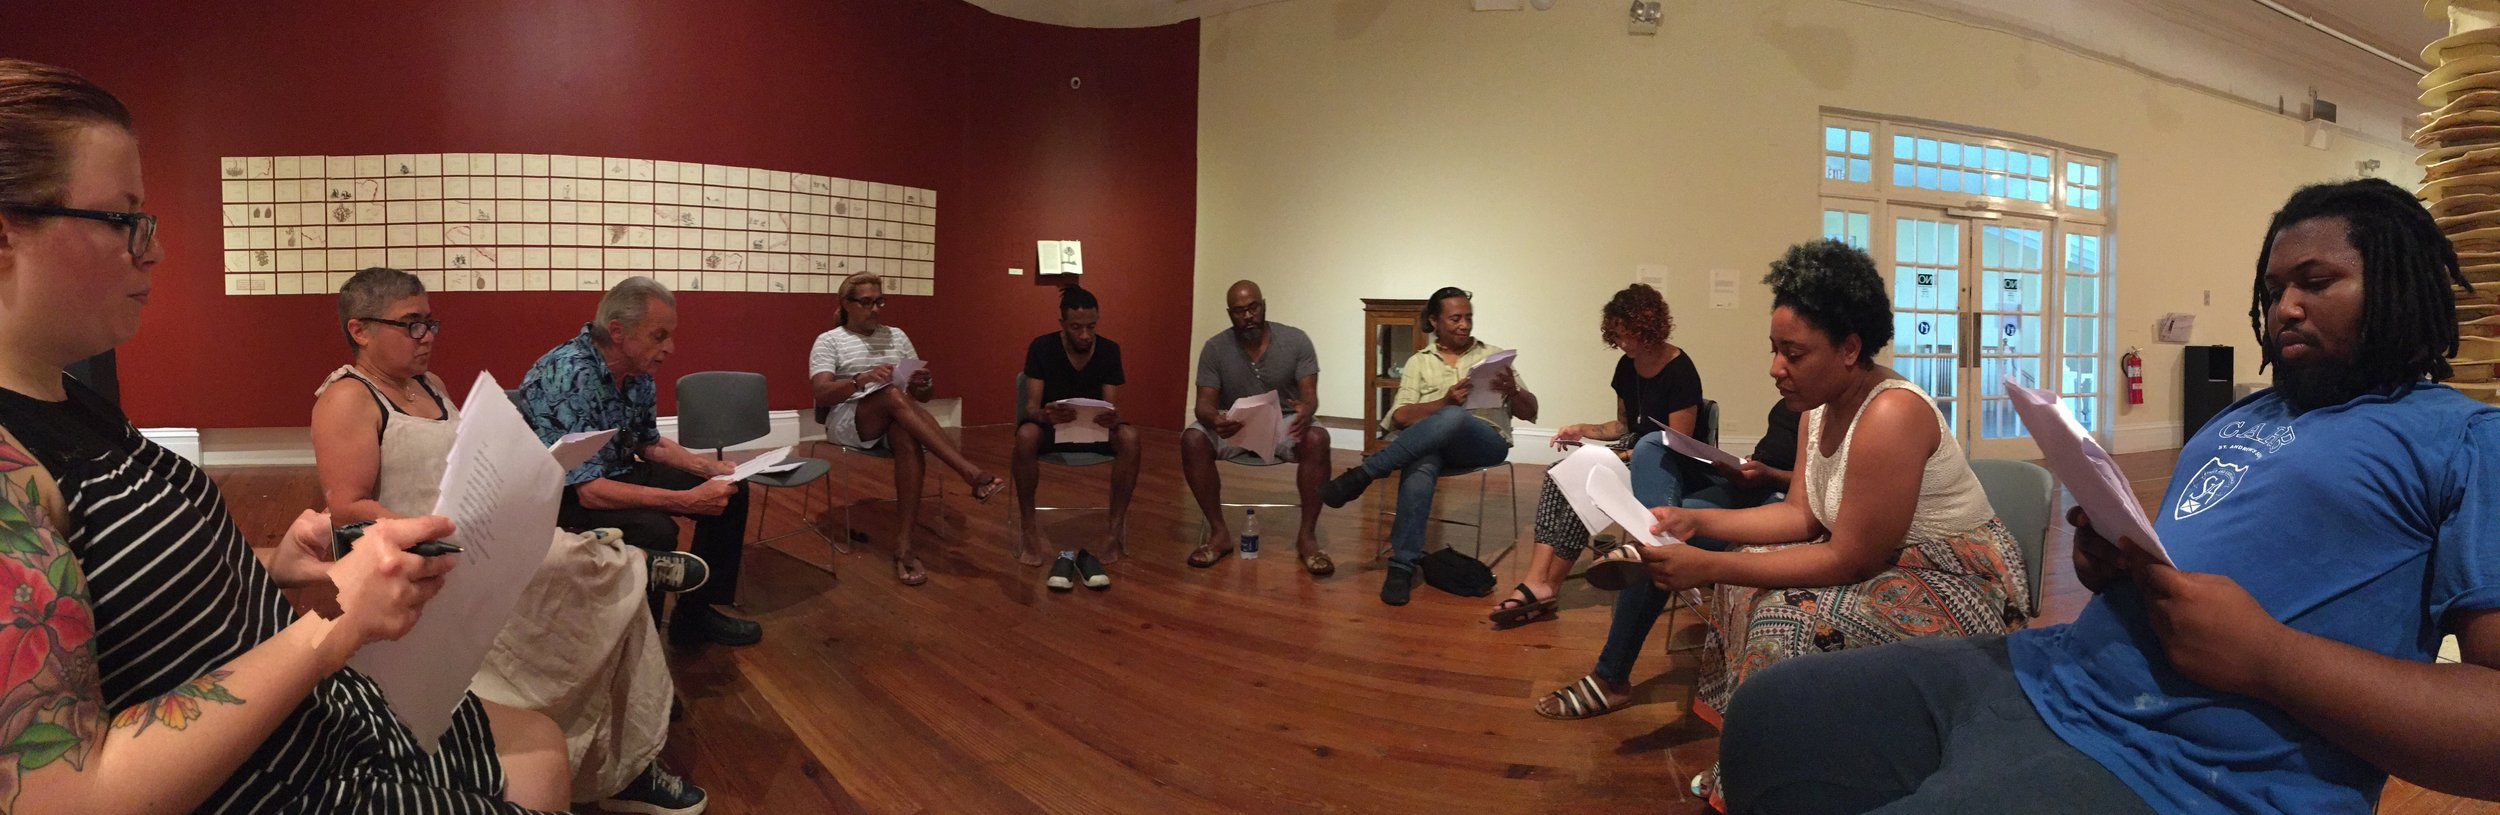 "Rehearsals for the reading of ""A True and Exact History"" featuring the entire cast of speakers."